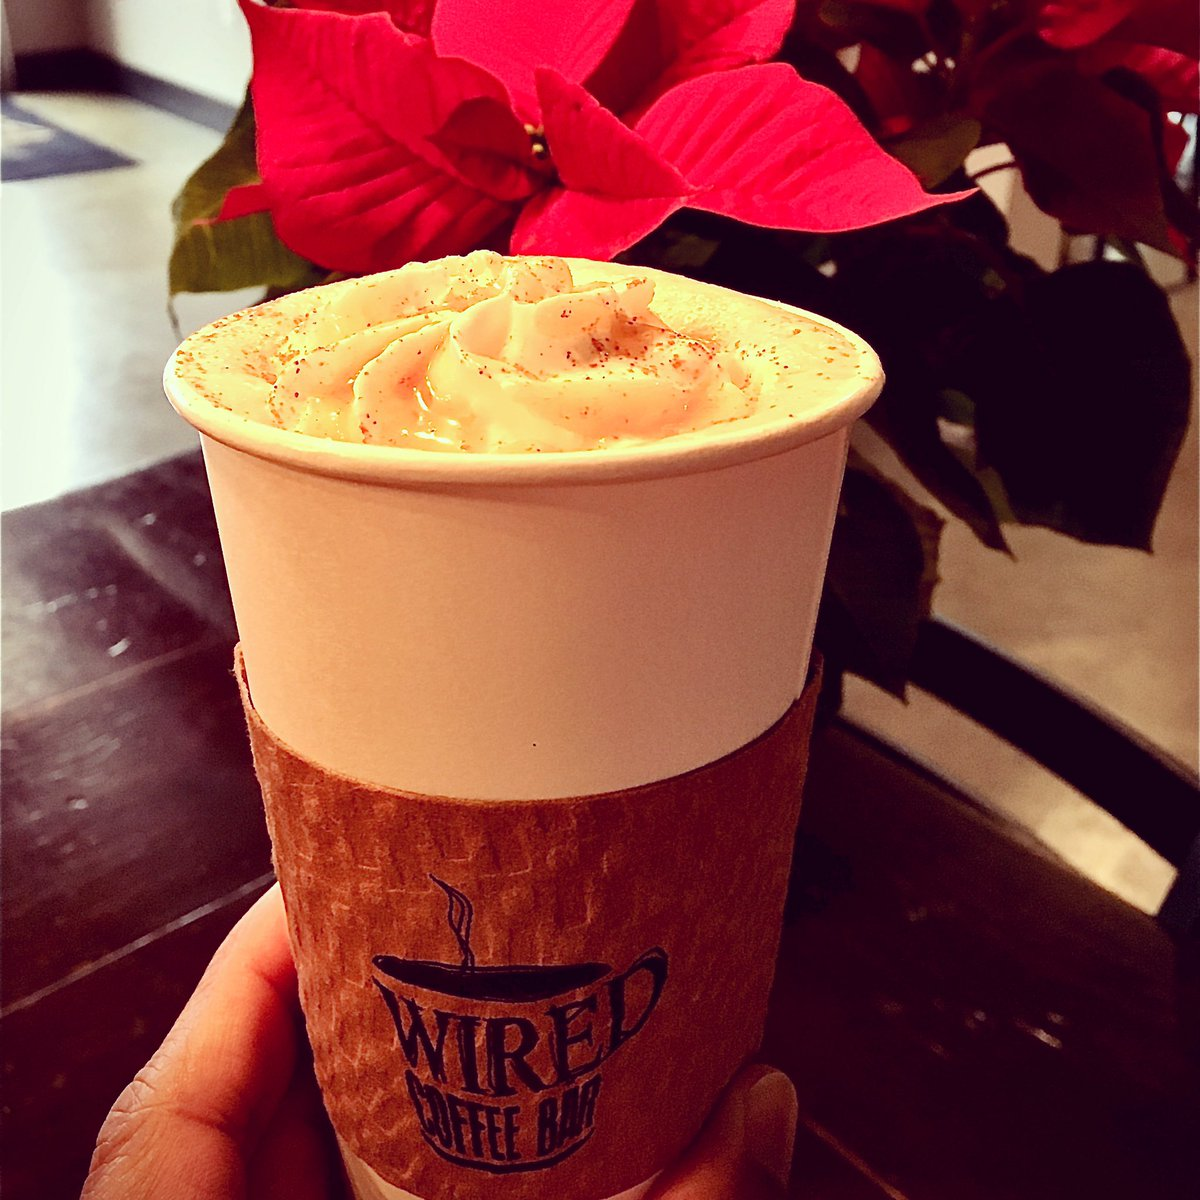 Yet another excellent way to take it all in heavenly #peace. . . #pumpkinspicelatte #getwiredcoffee #wiredcoffeebar #buylocal #dayafter #cybertuesday #mainstreet #ooltewahtn #hamiltoncounty #easttennessee #swishkraft